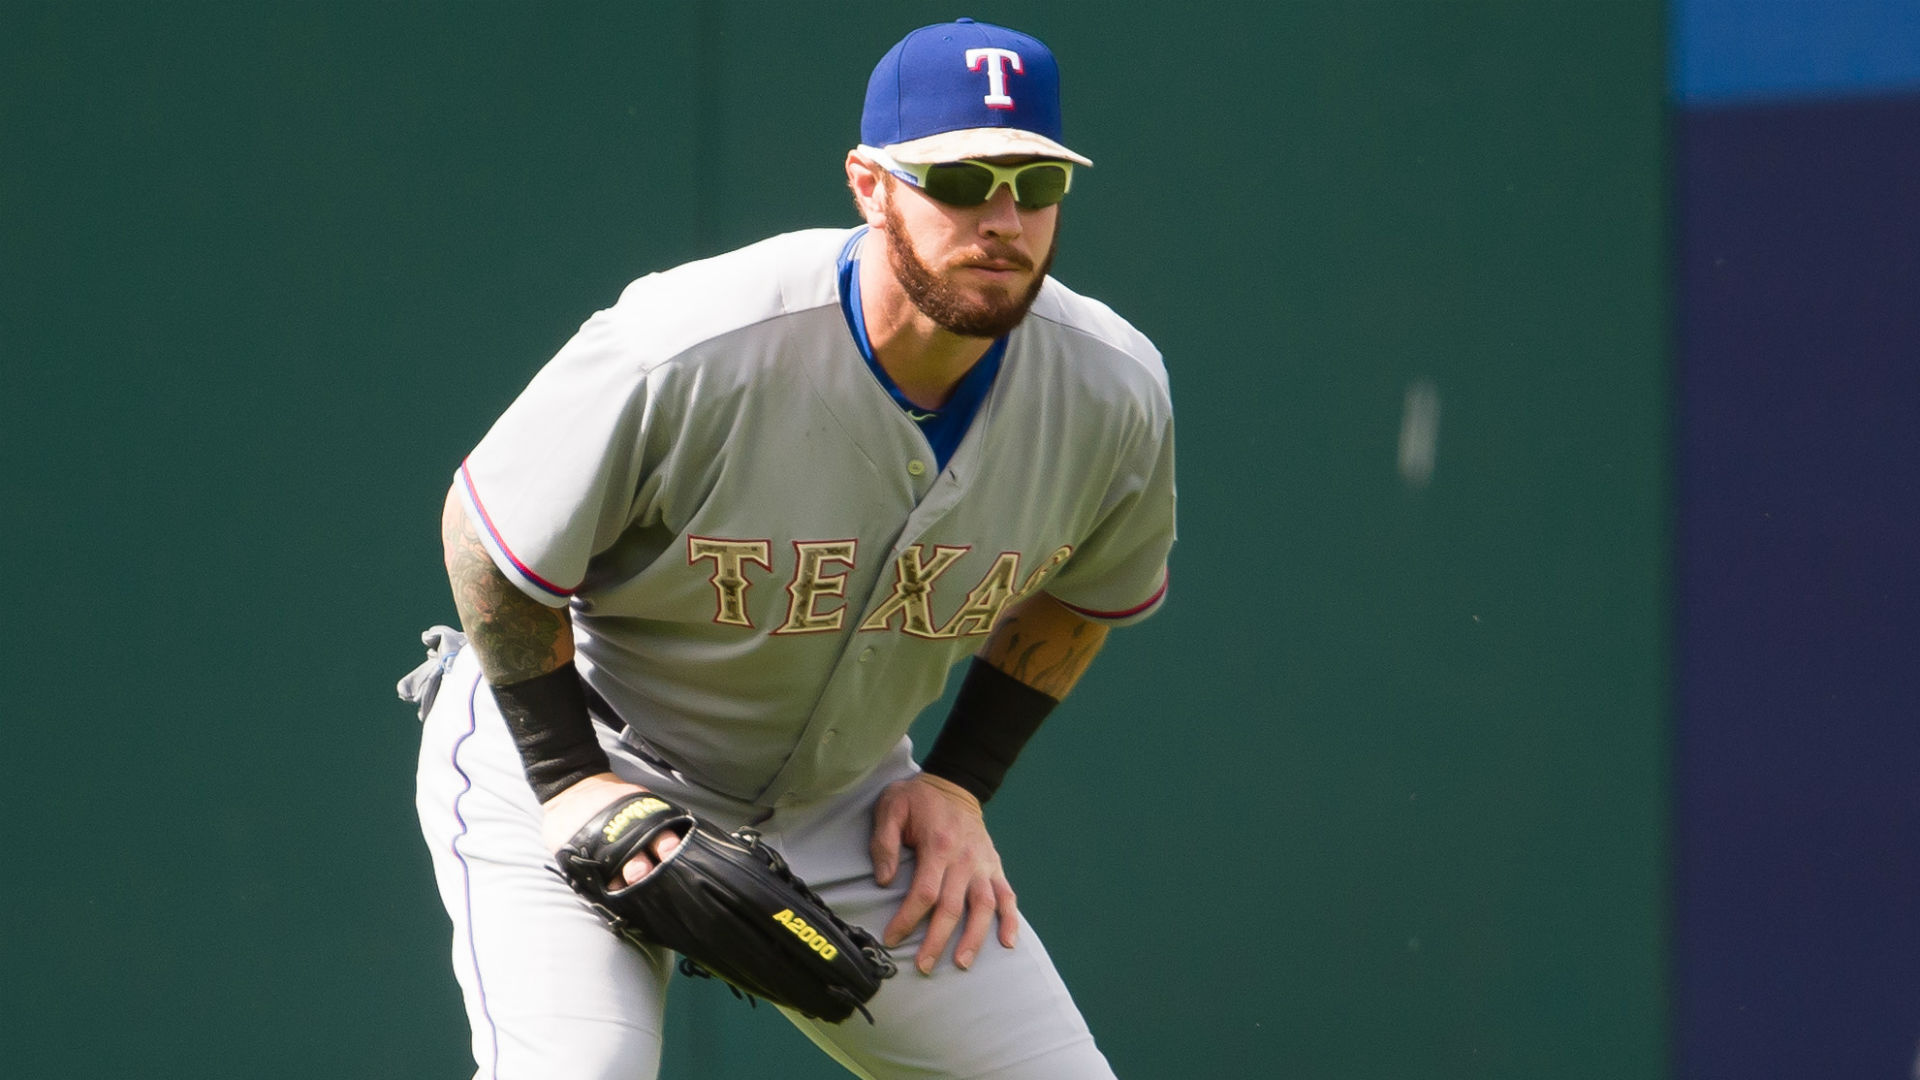 Josh Hamilton could play center field for Rangers after return from DL